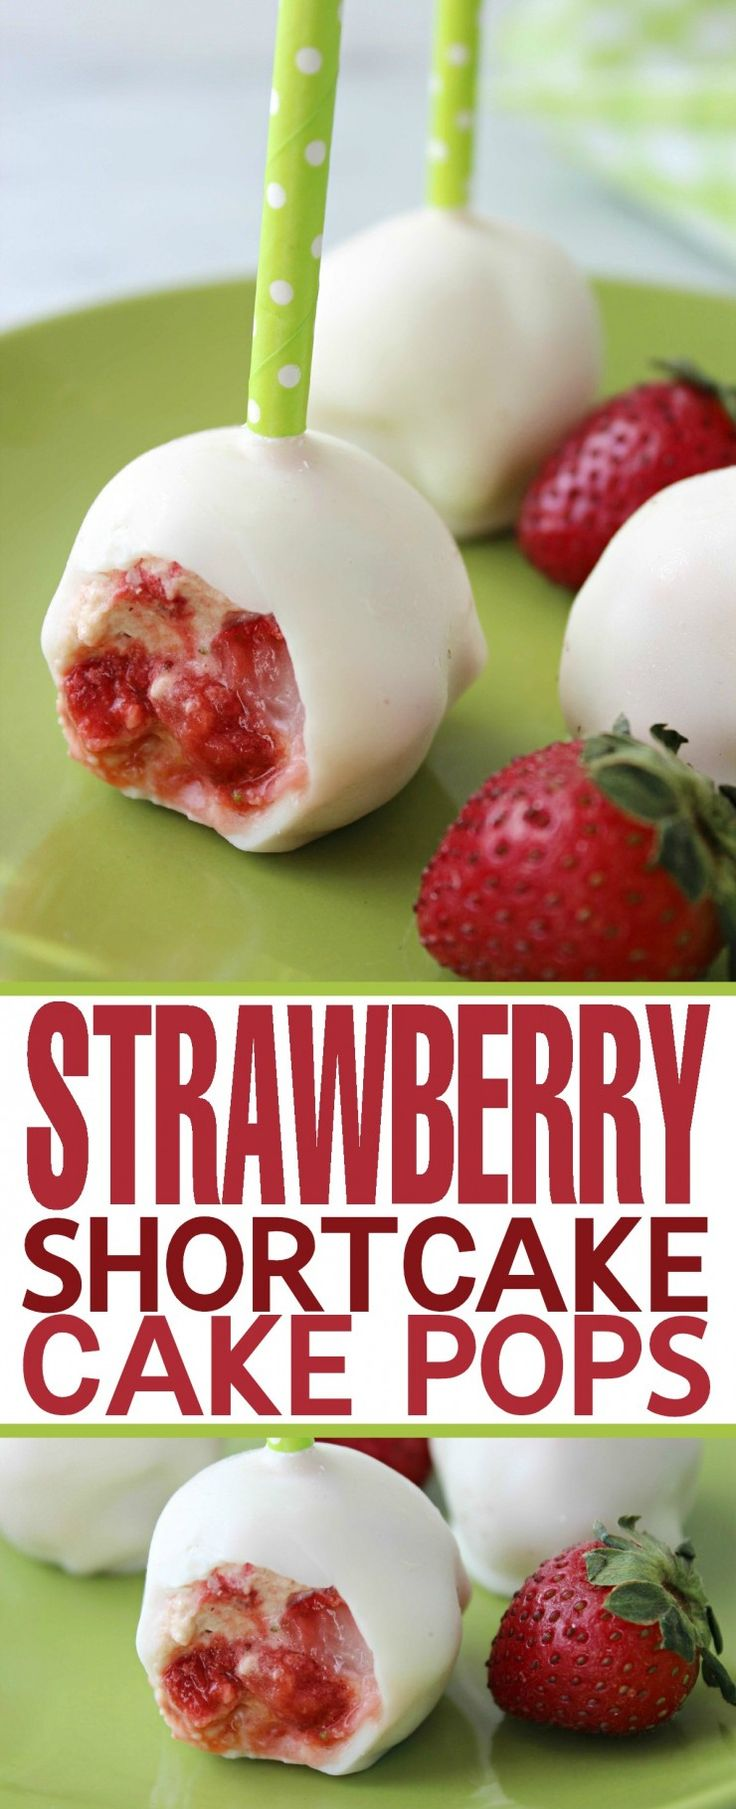 This Strawberry Shortcake Cake Pops Recipe results in the most amazing summery cake pops you have ever eaten. Perfect for a summer dessert!